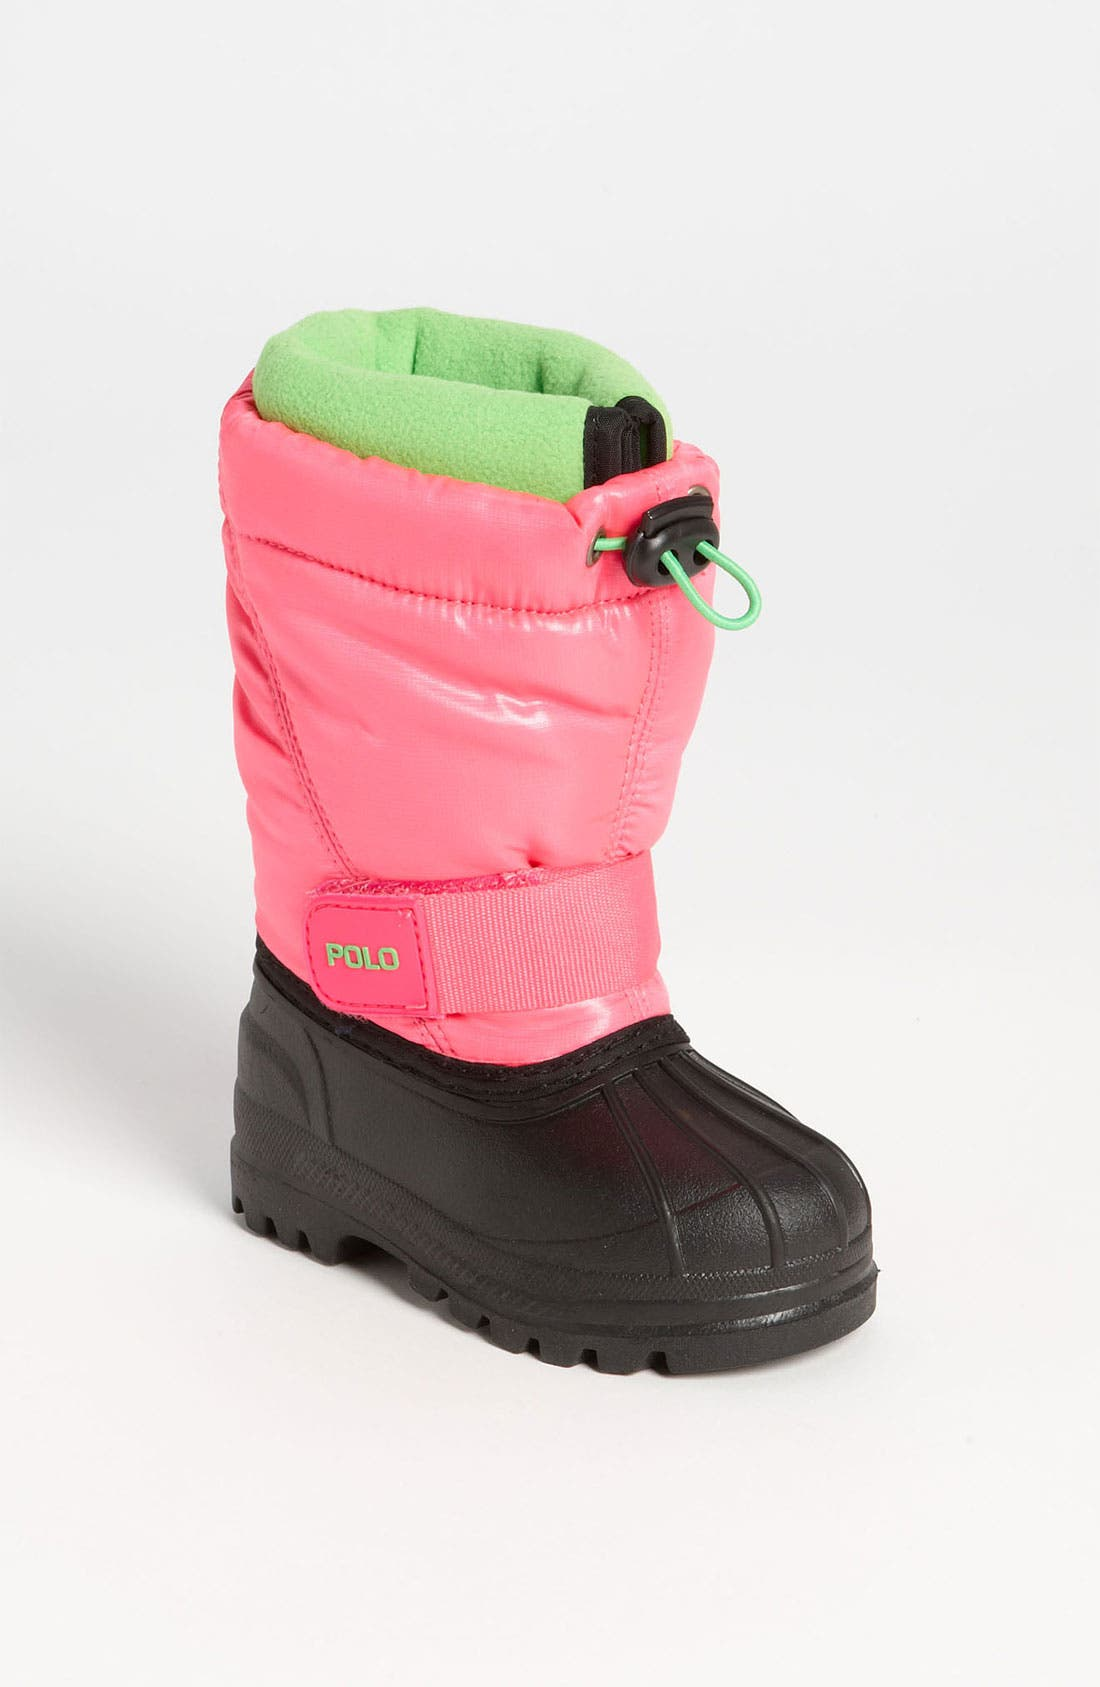 Alternate Image 1 Selected - Polo Ralph Lauren Ripstop Boot (Baby, Walker & Toddler)